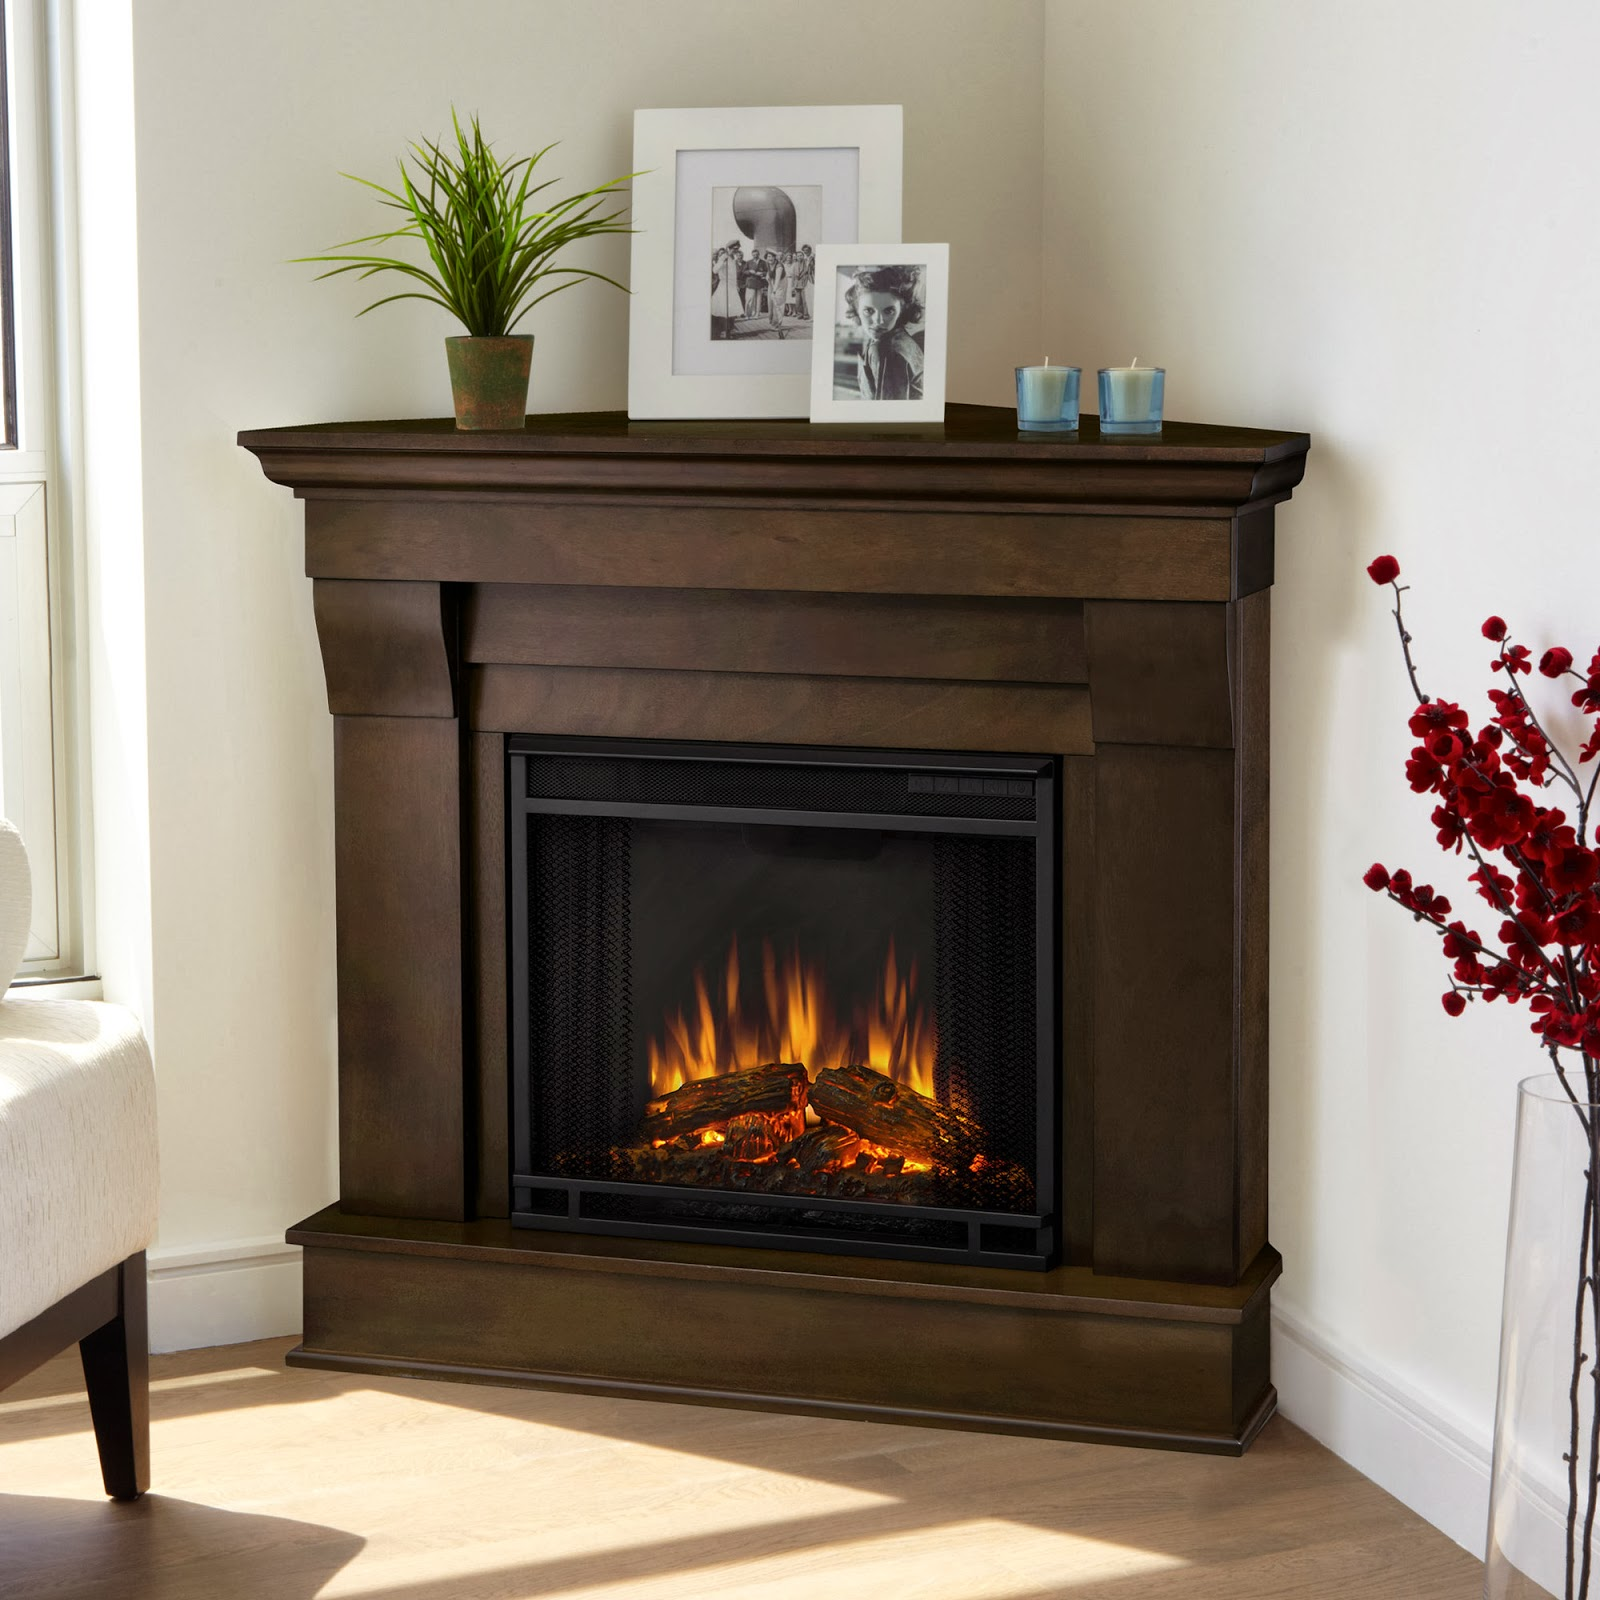 Gas Fireplace: Patio And Yards: Gel Fuel & Electric Fireplaces